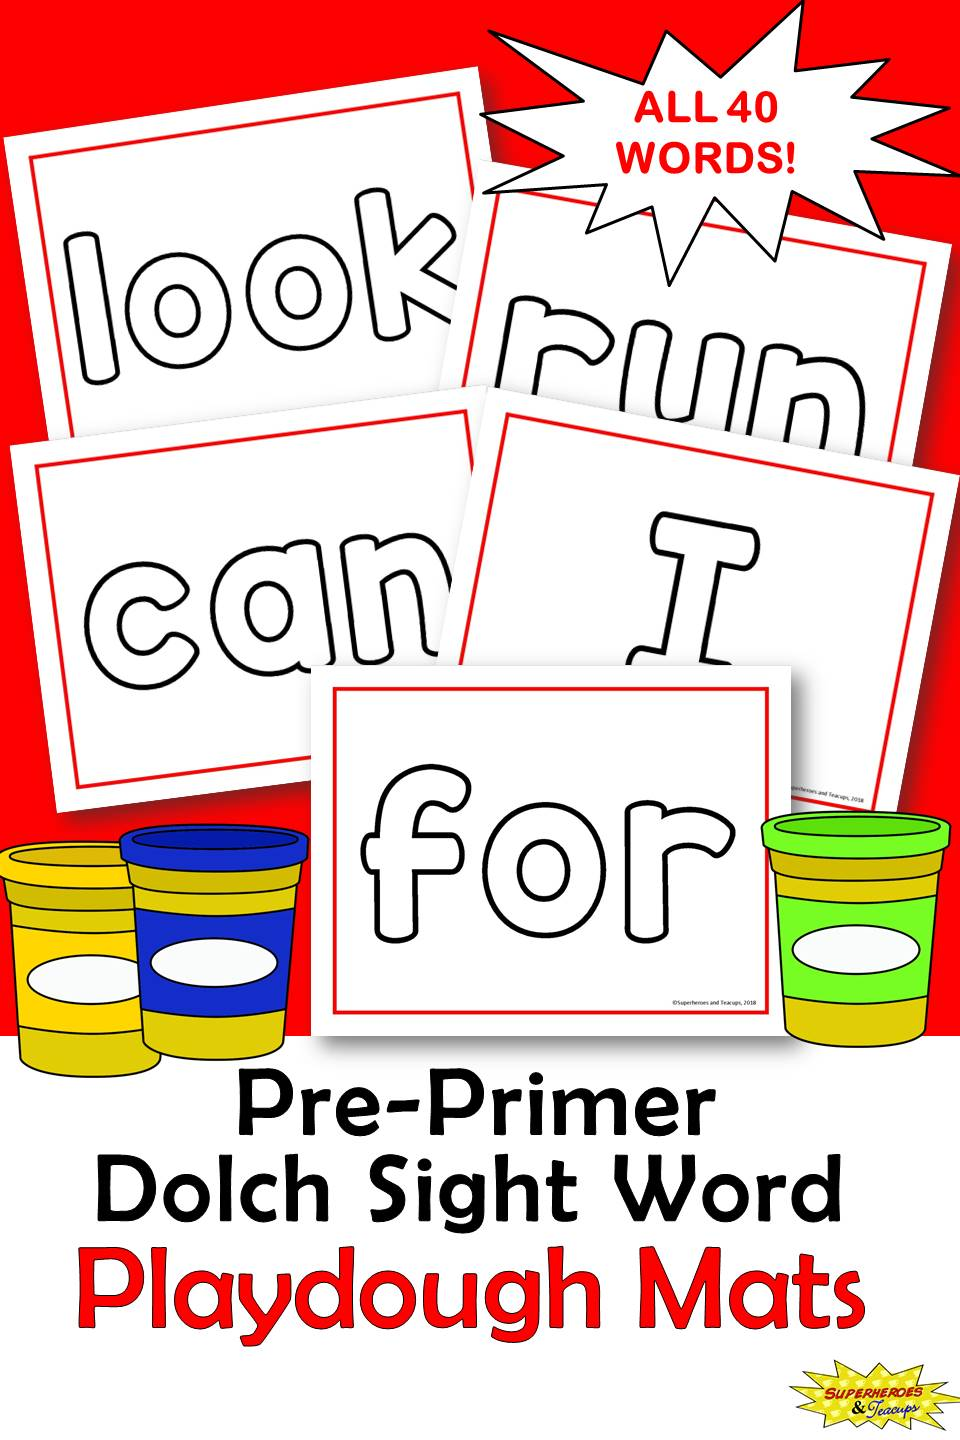 dolch sight word playdough mats pre primer